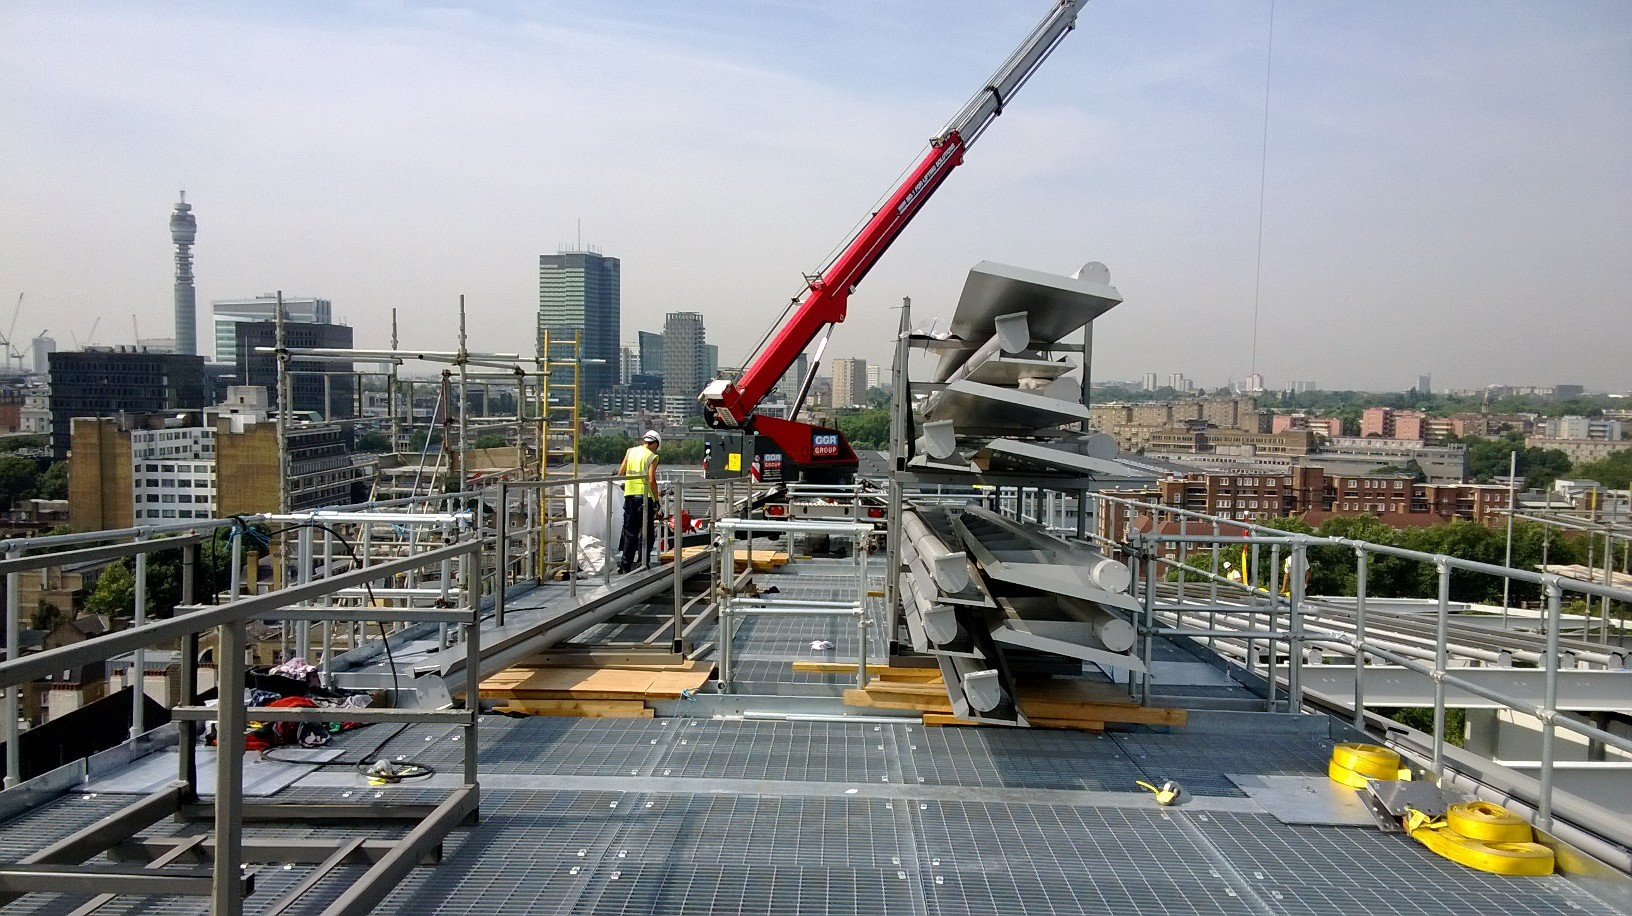 Crane base assembling louvres on the London skyline